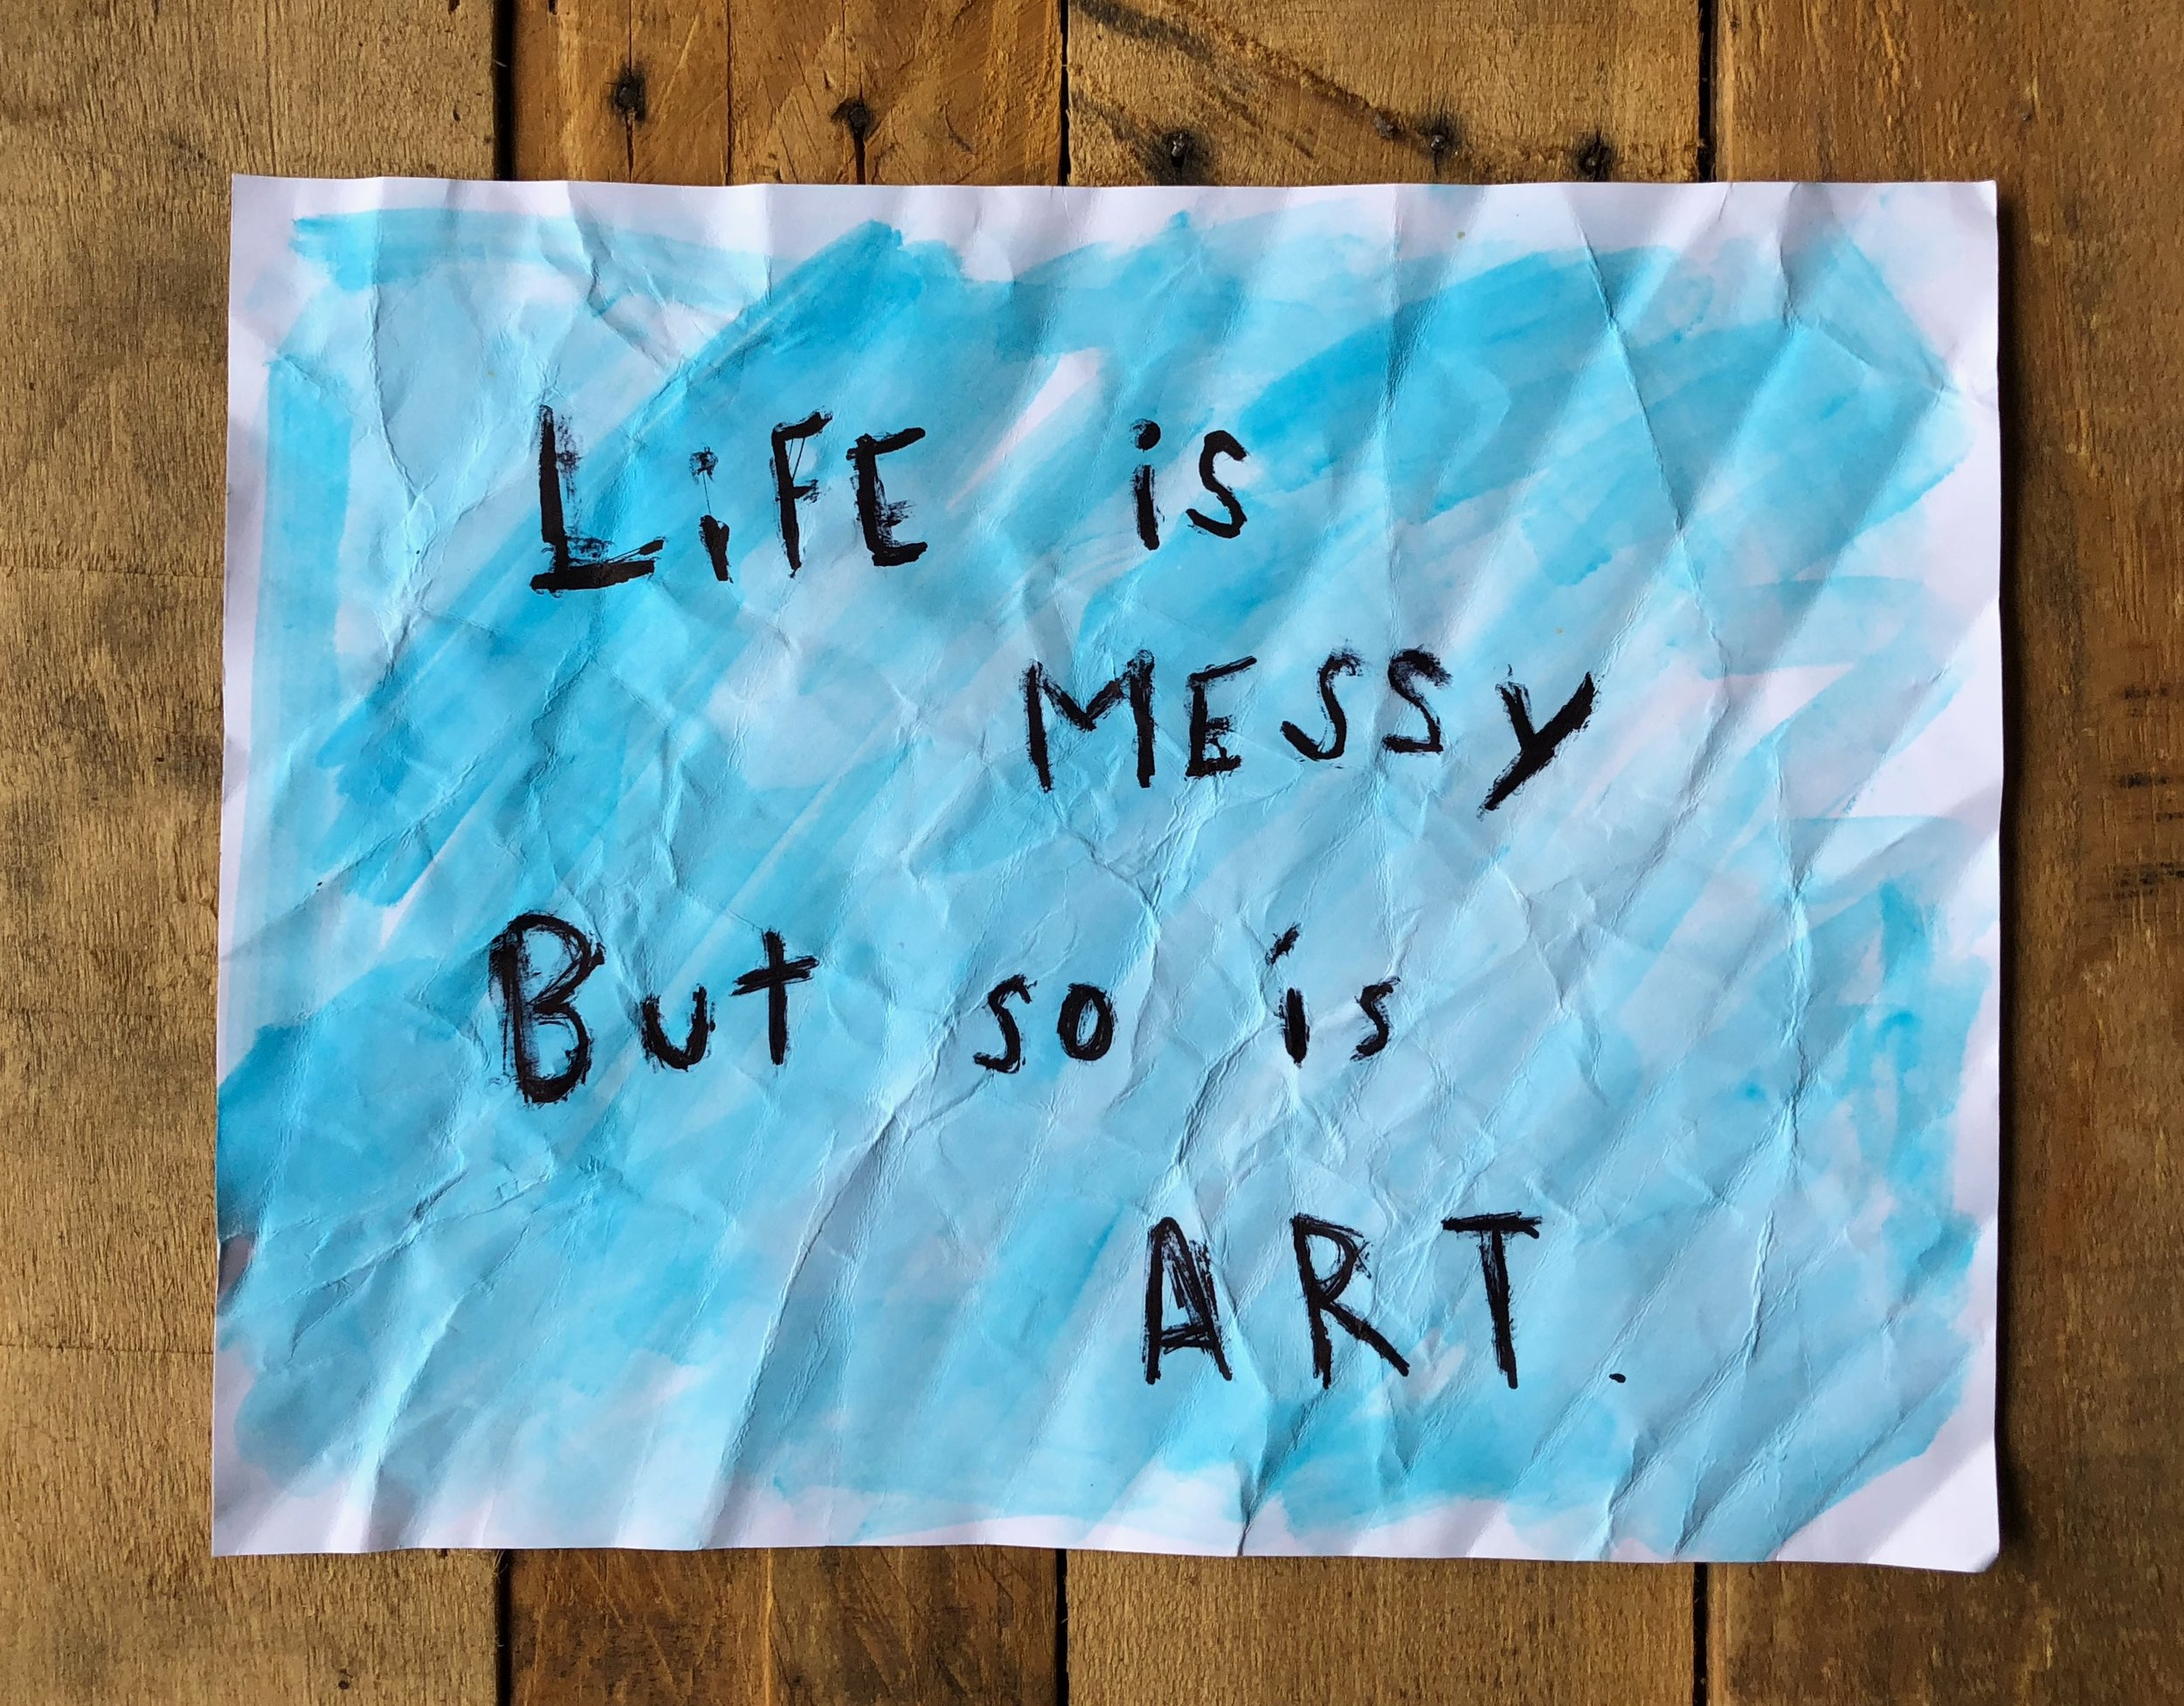 Life is messy, but so is art.